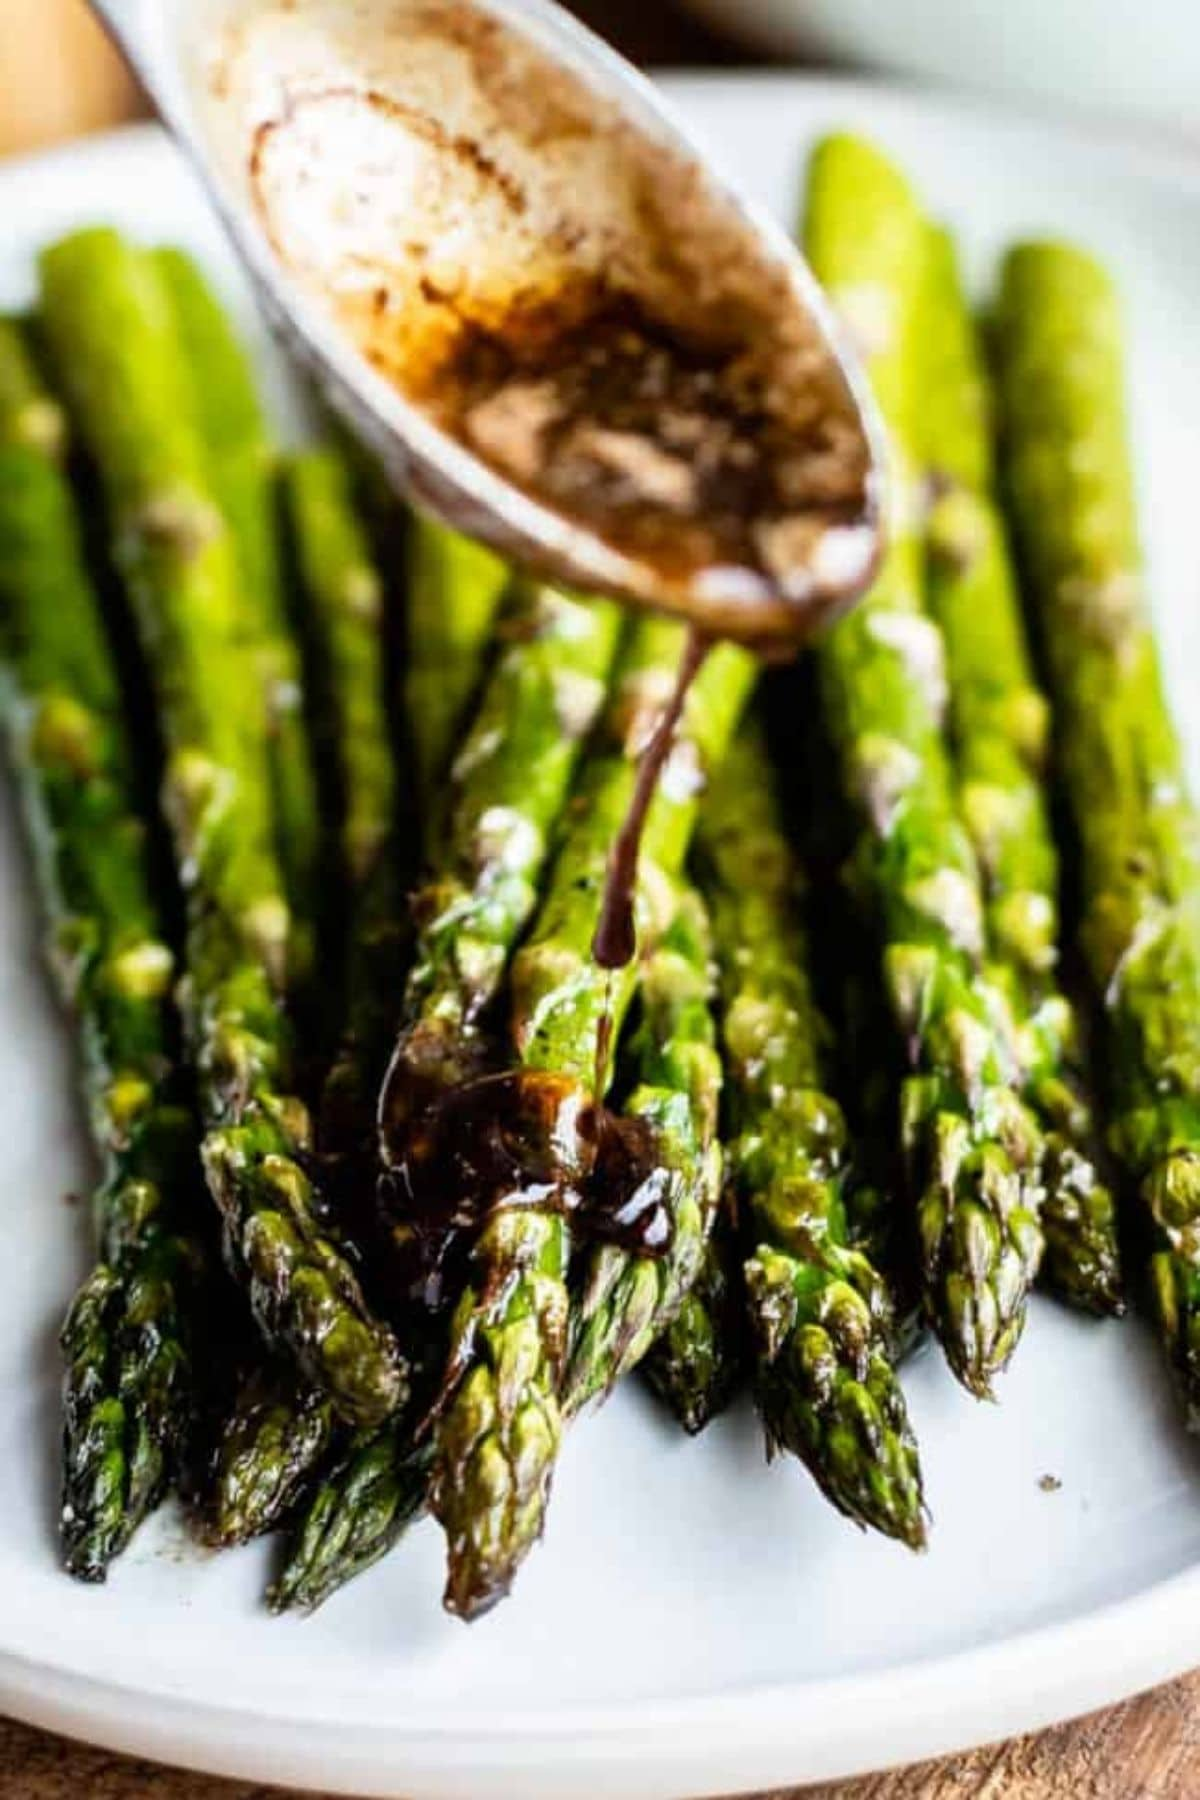 Wooden spoon pouring sauce over stack of asparagus